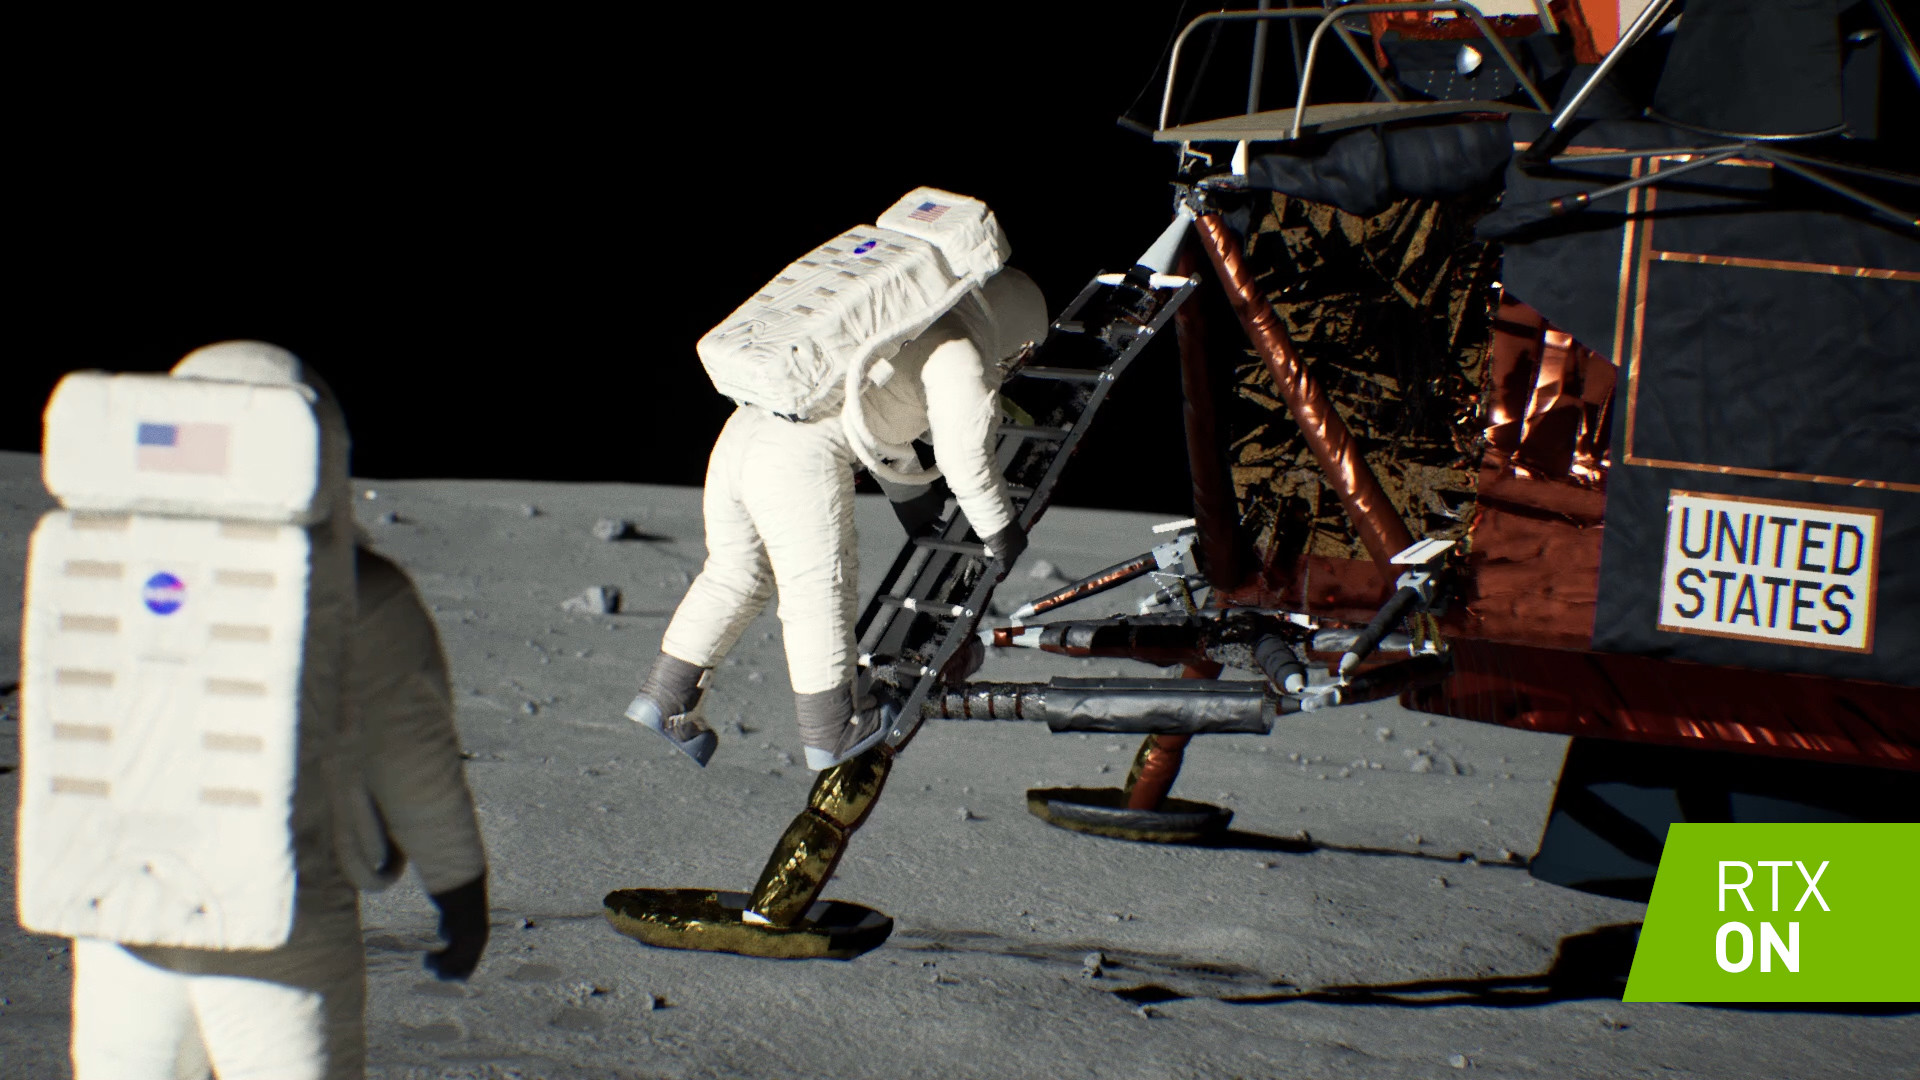 Ray tracing, Apollo 11, Nvidia RTX, Moon landing, Graphics processing unit, Nvidia, , Apollo program, Rendering, Graphics Cards & Video Adapters, Ray tracing, Astronaut, Space, Vehicle, Action figure